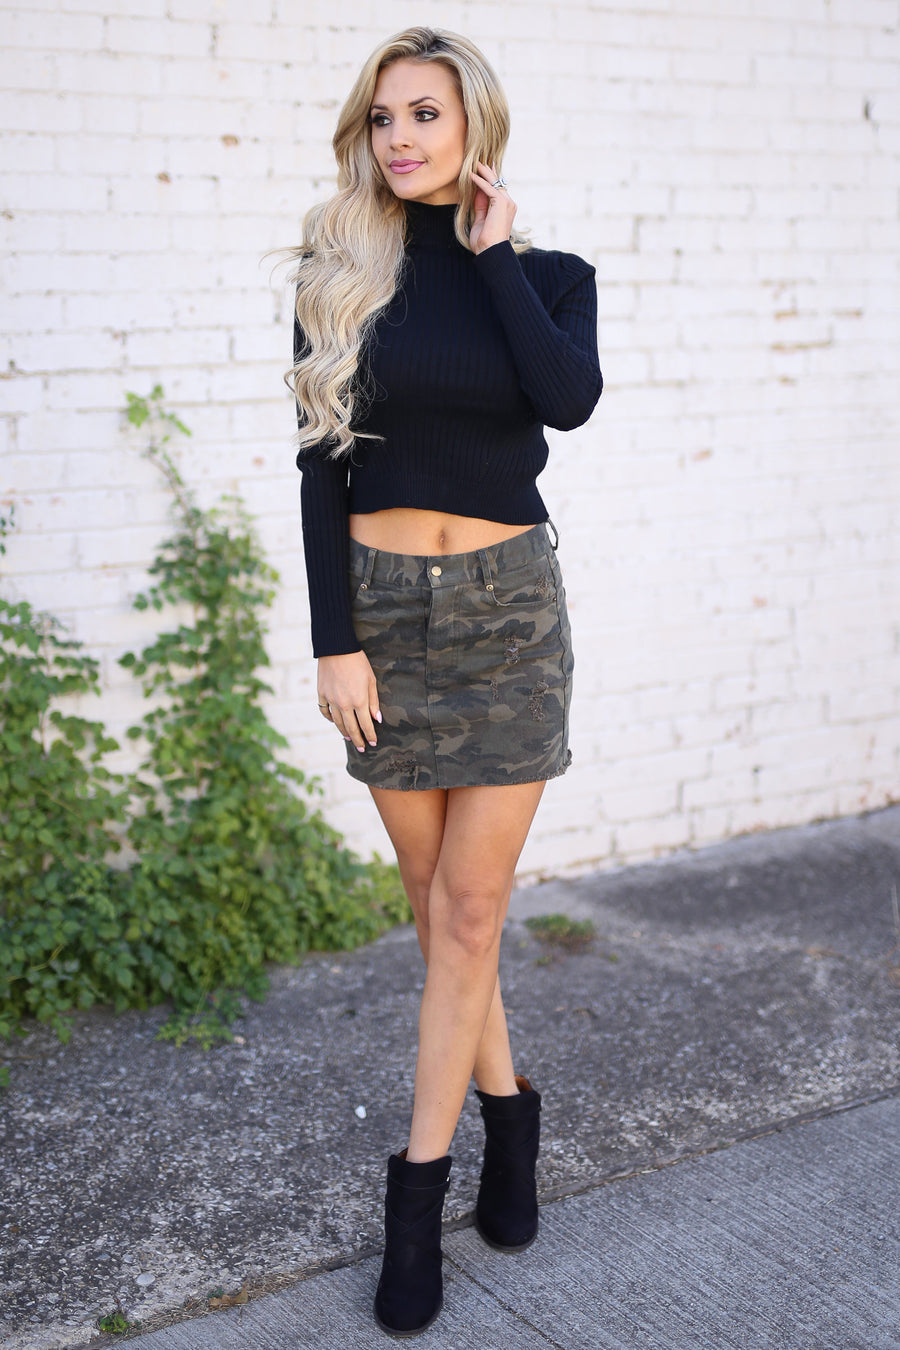 First Love Top - Black long sleeve ribbed crop top, side, Closet Candy Boutique